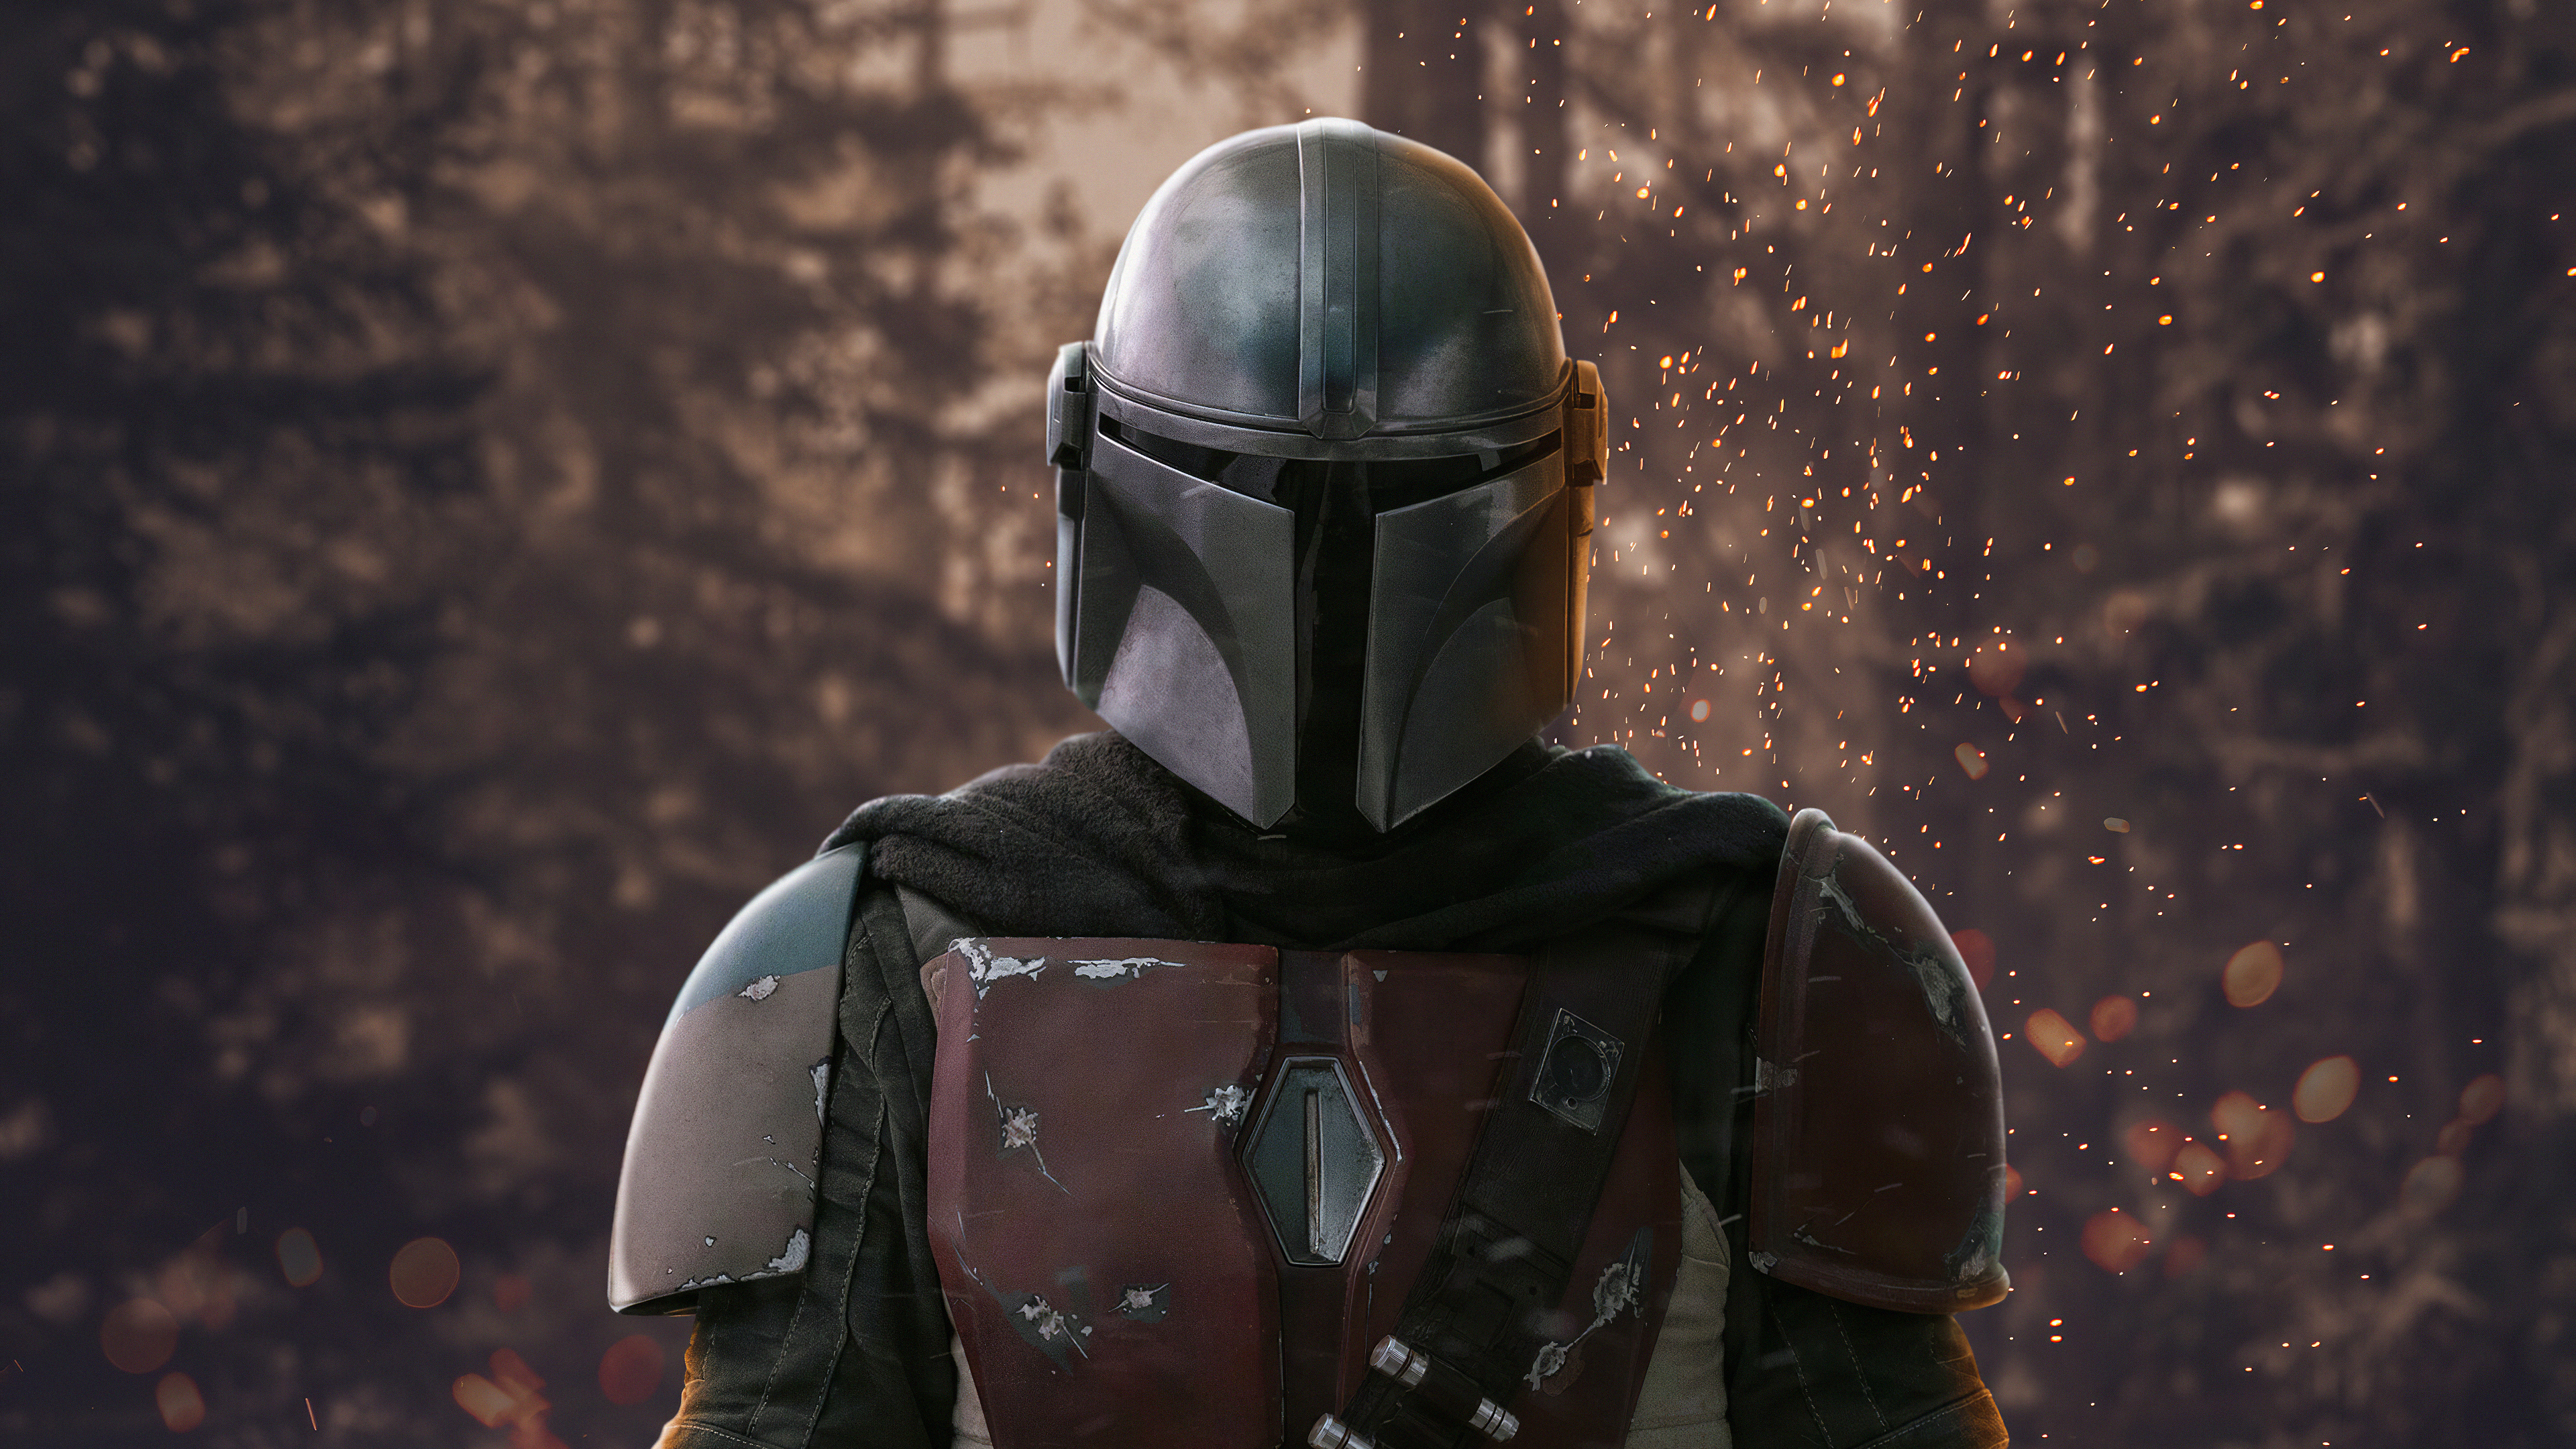 The Mandalorian Backgrounds, Pictures, Images